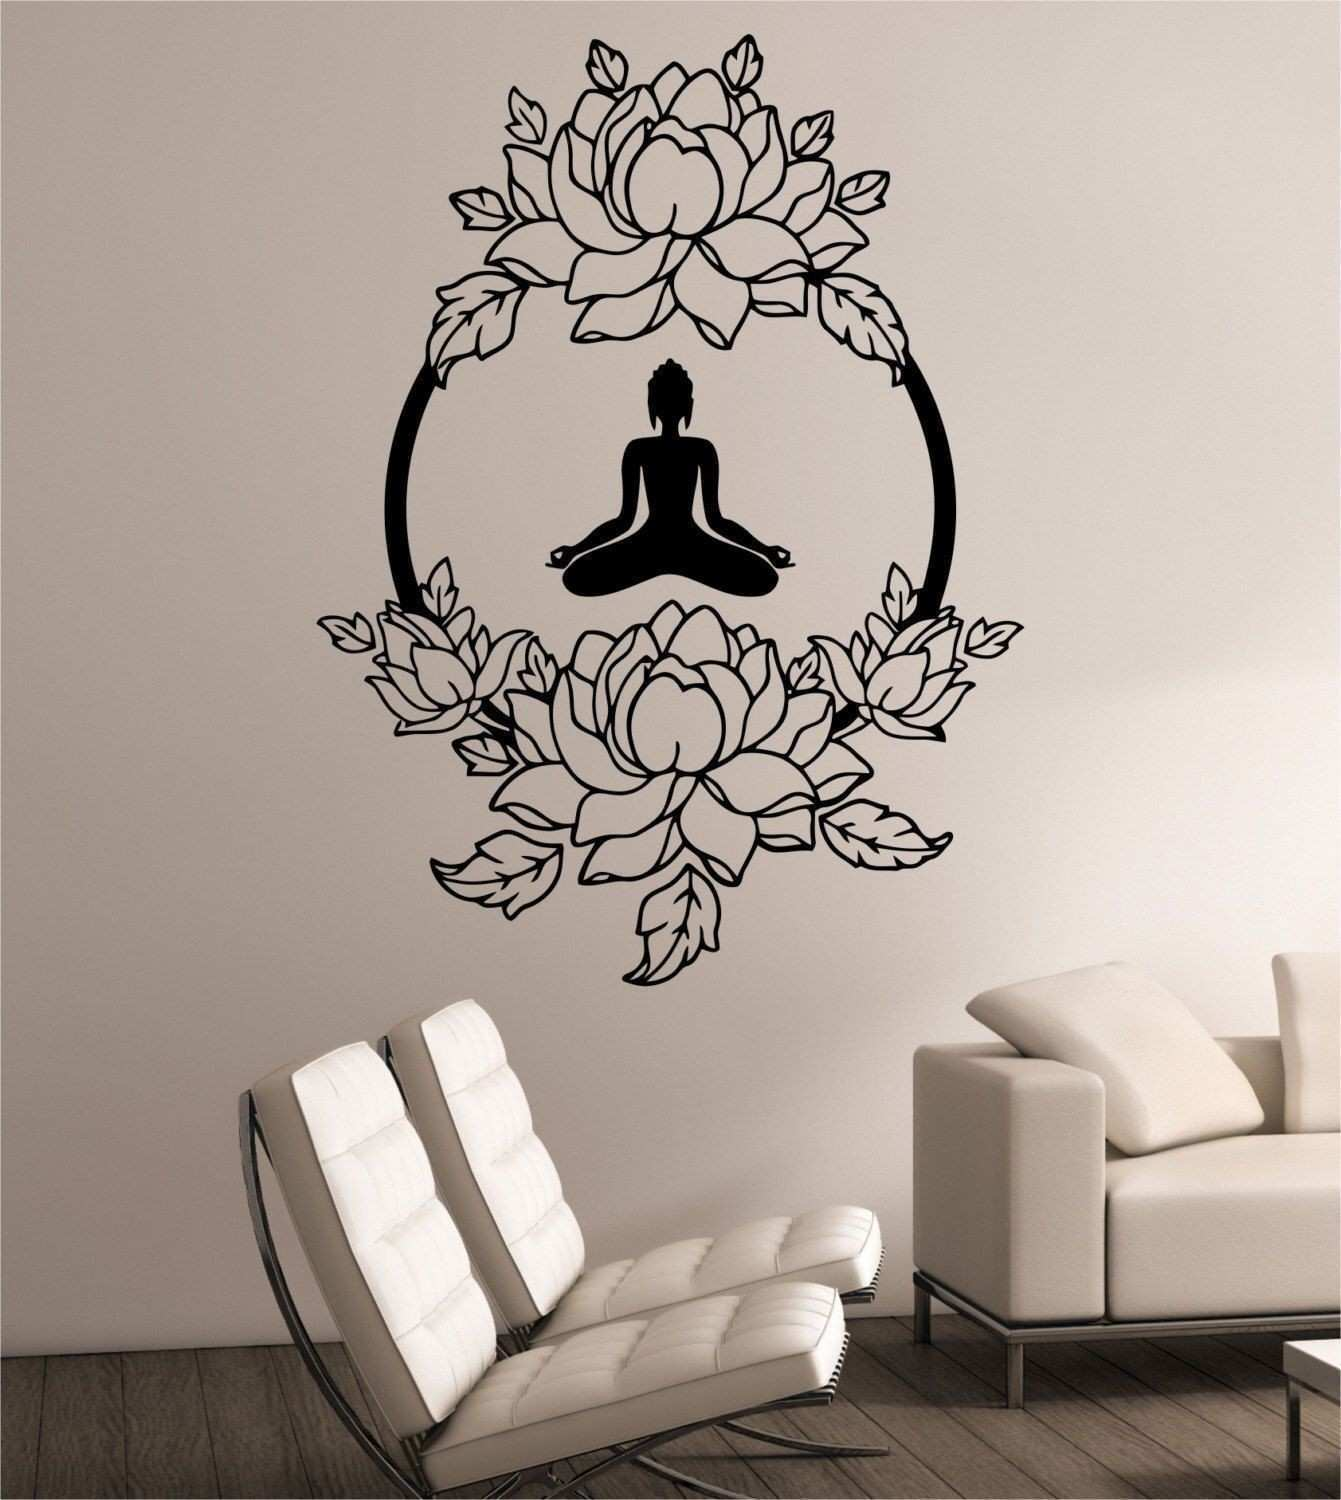 Inspirational Mickey Mouse Wall Decals Walmart